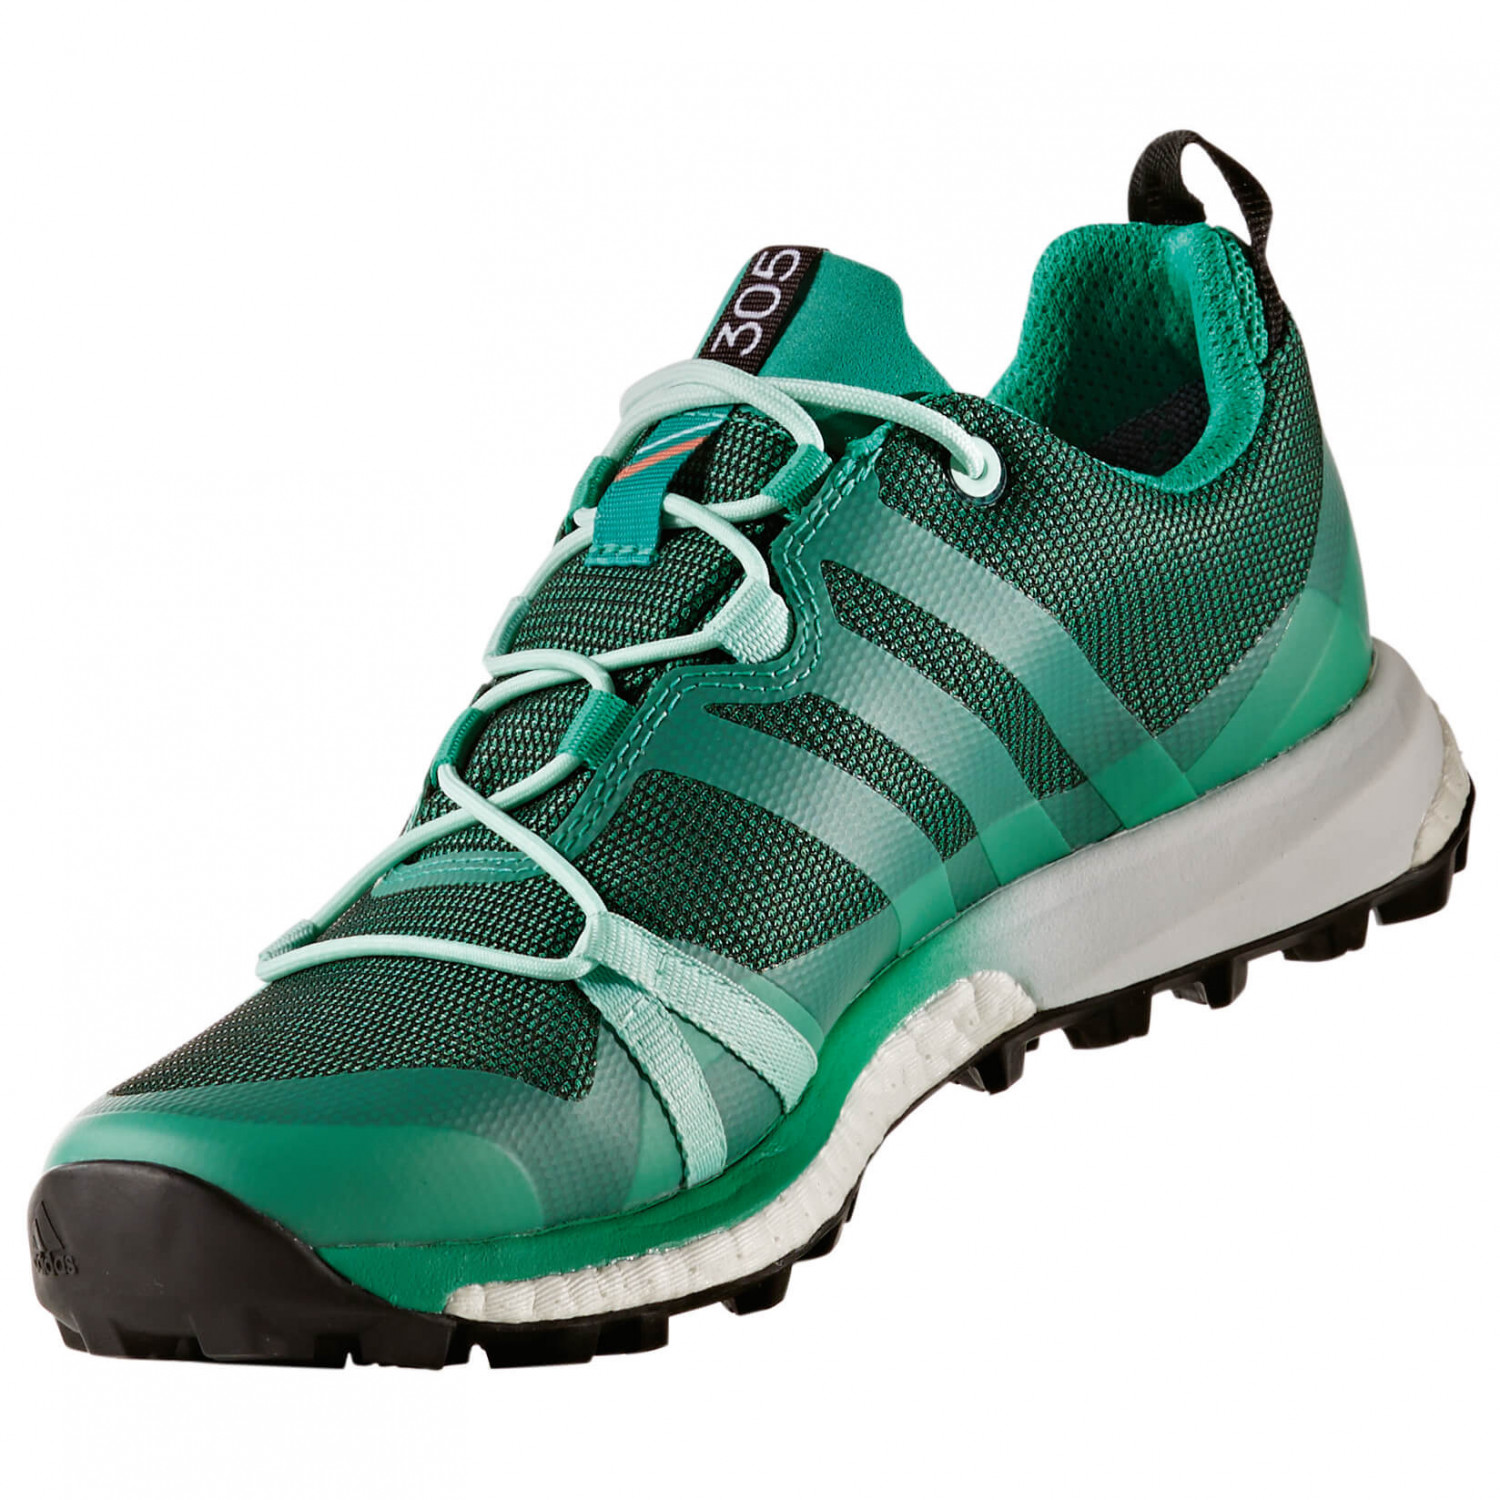 Creative Adidas Womenu0026#39;s Swift Run Shoes - Grey | Adidas Canada